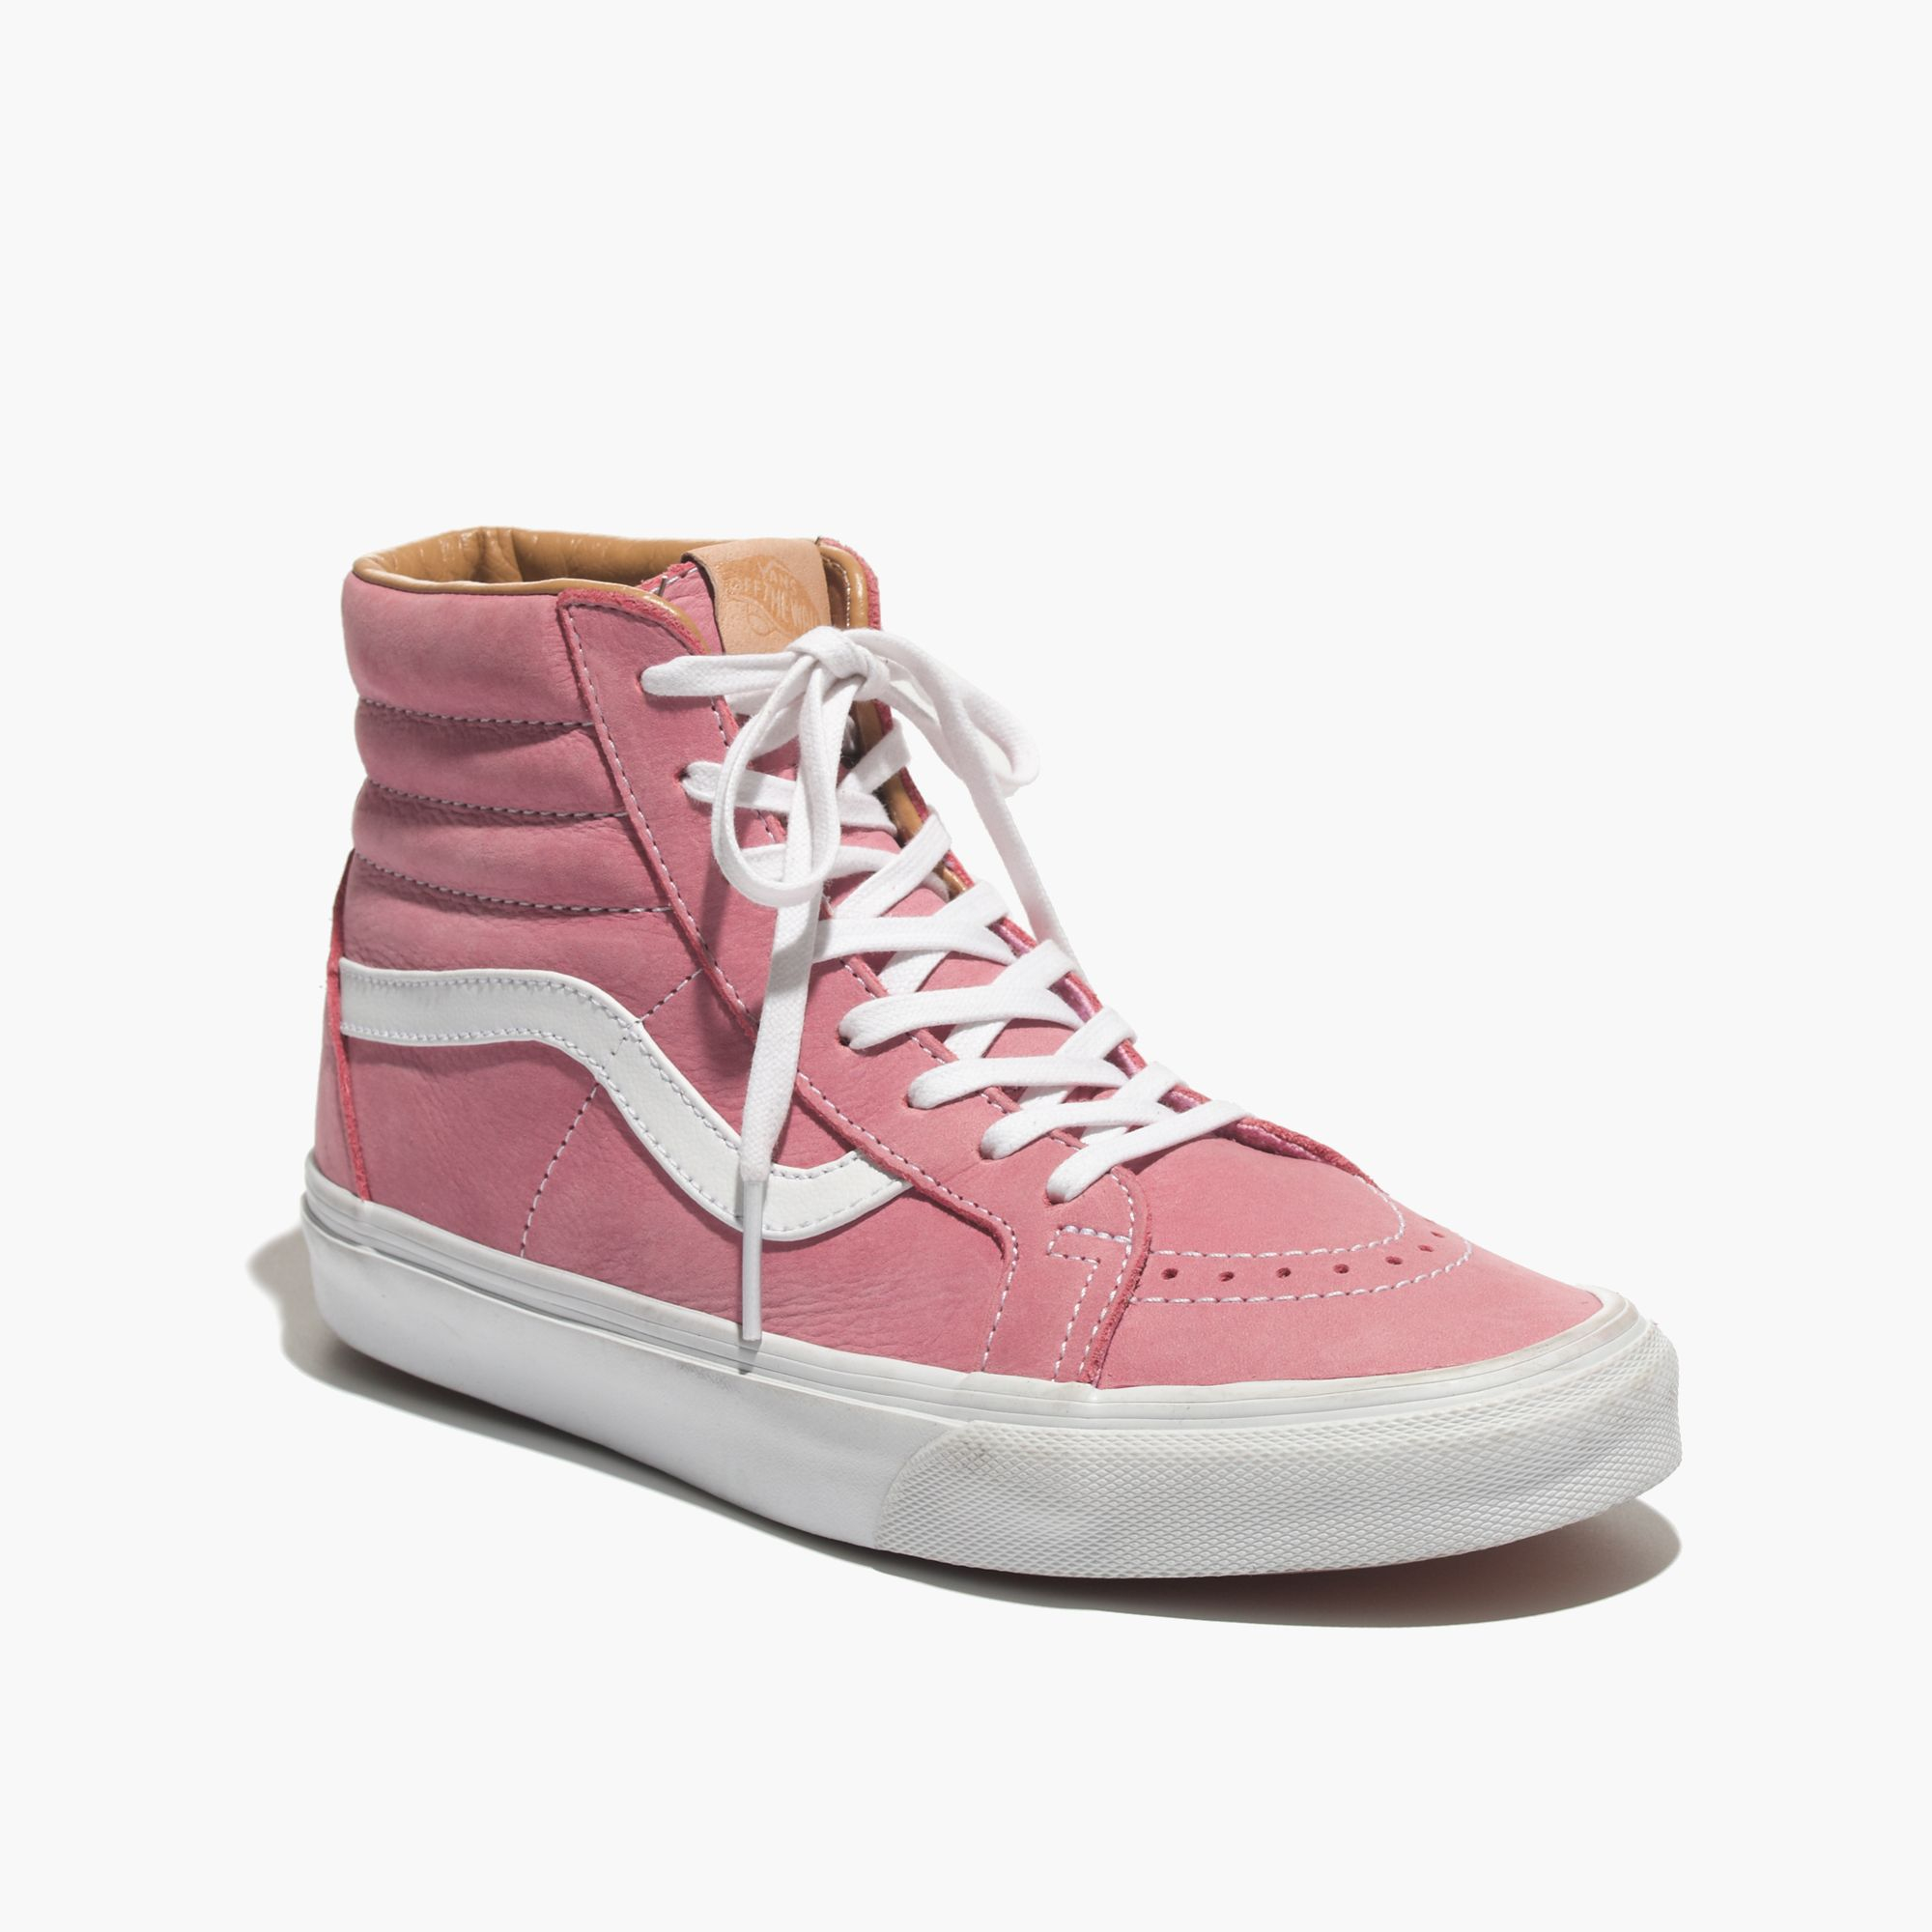 a2c740e4d2 Lyst - Madewell Vans® Sk8-hi Leather High-top Sneakers In Pink in Pink